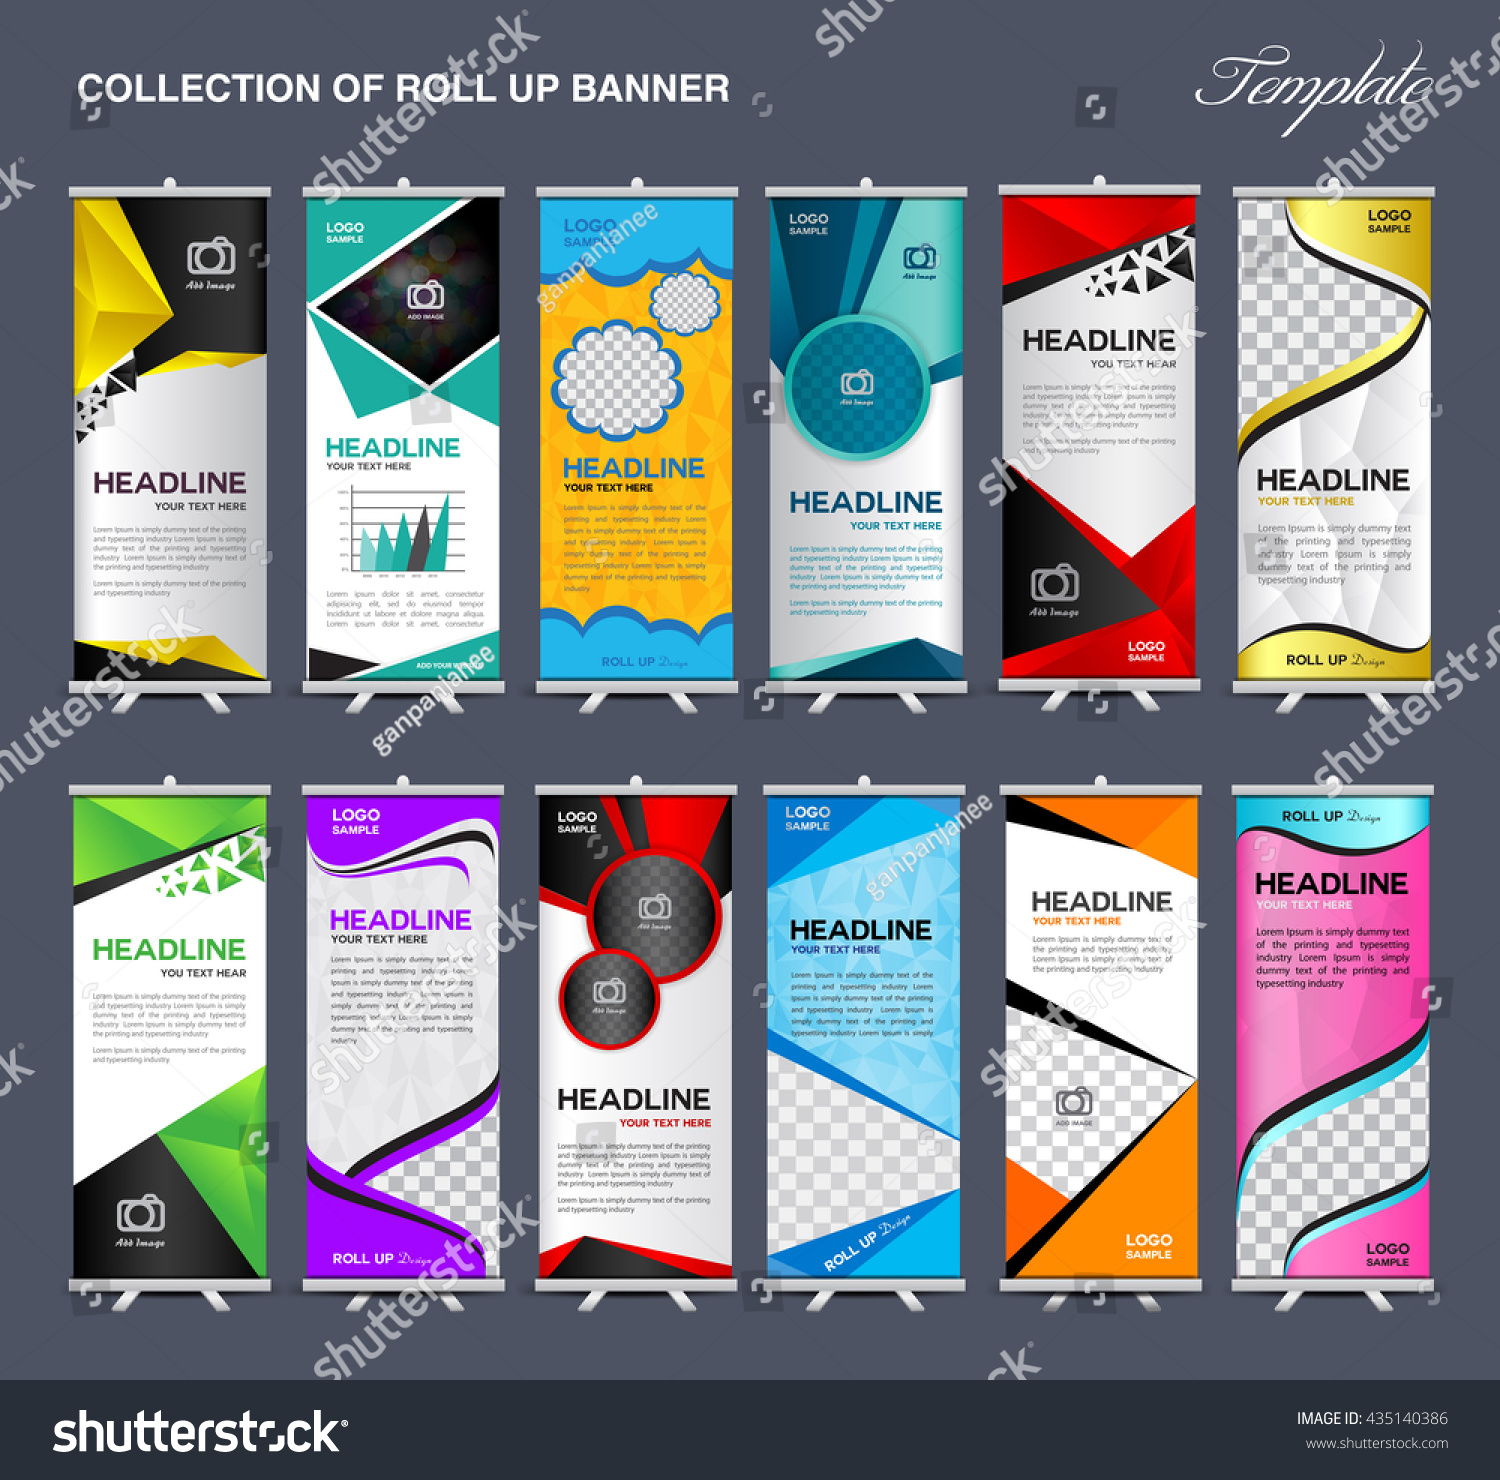 Marketing Exhibition Stand Vector : Collection roll banner design stand template stock vector